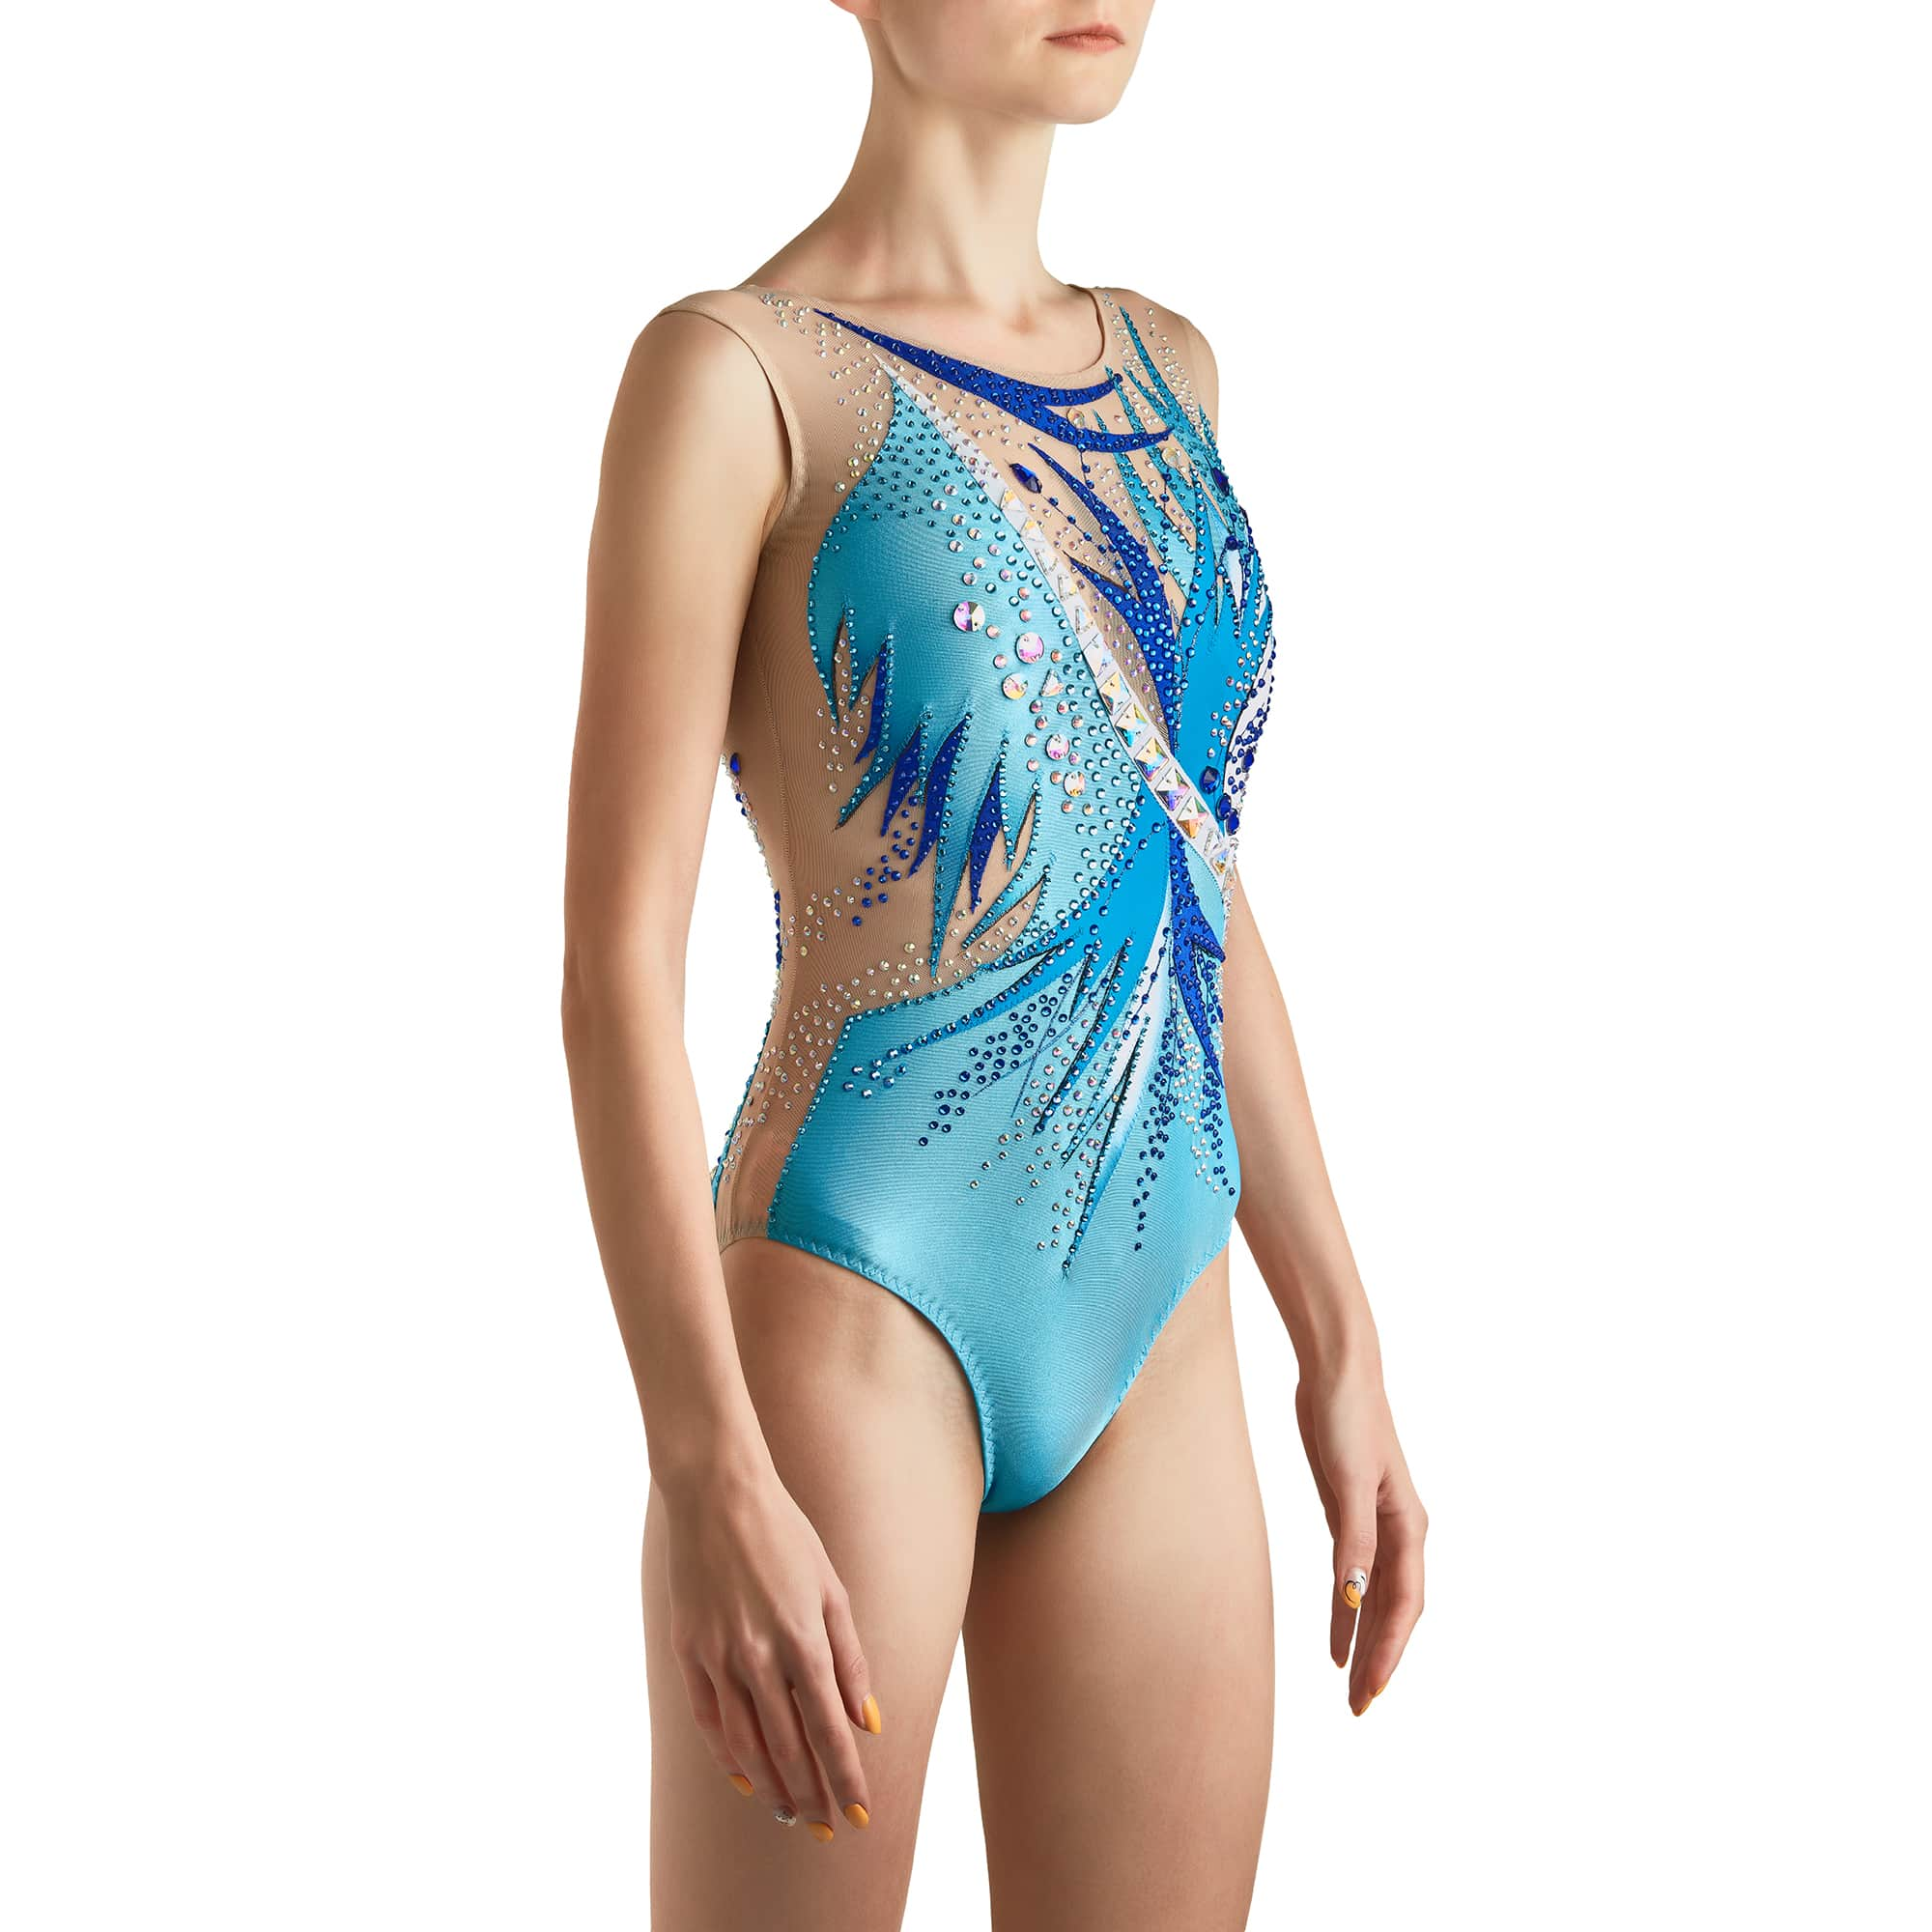 Quarter side of Sleeveless & Skirtless Acrobatic Gymnastics Leotard № 255 made in aqua, royal blue, blue, white colours